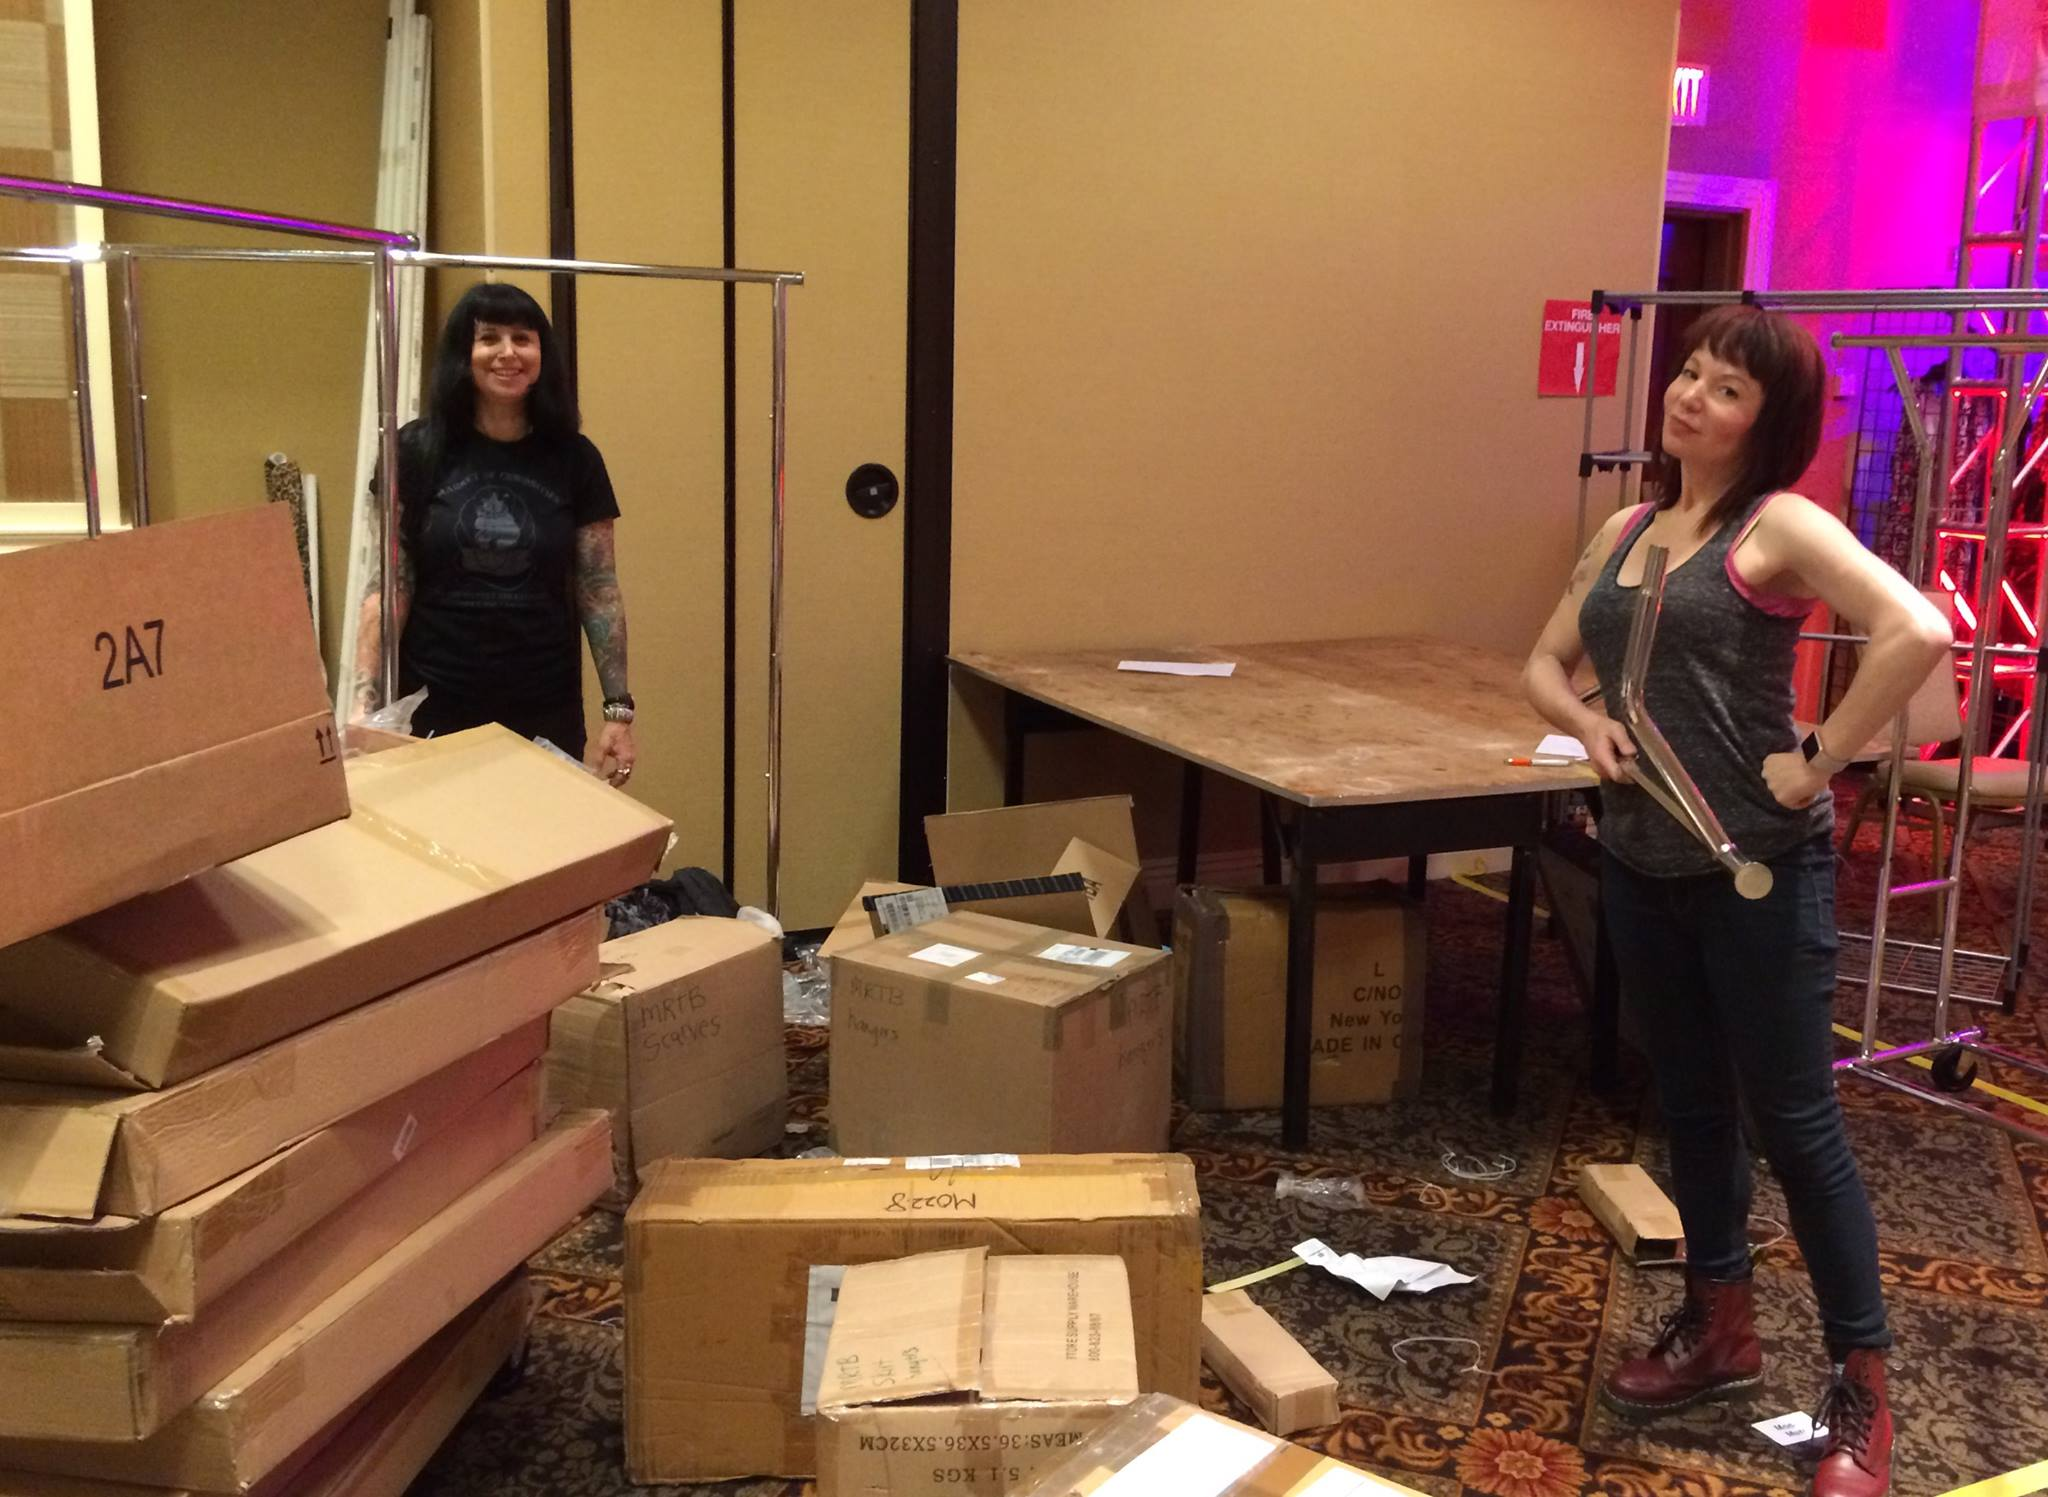 Miss Ruth and Peanut set up their booth at Viva Las Vegas